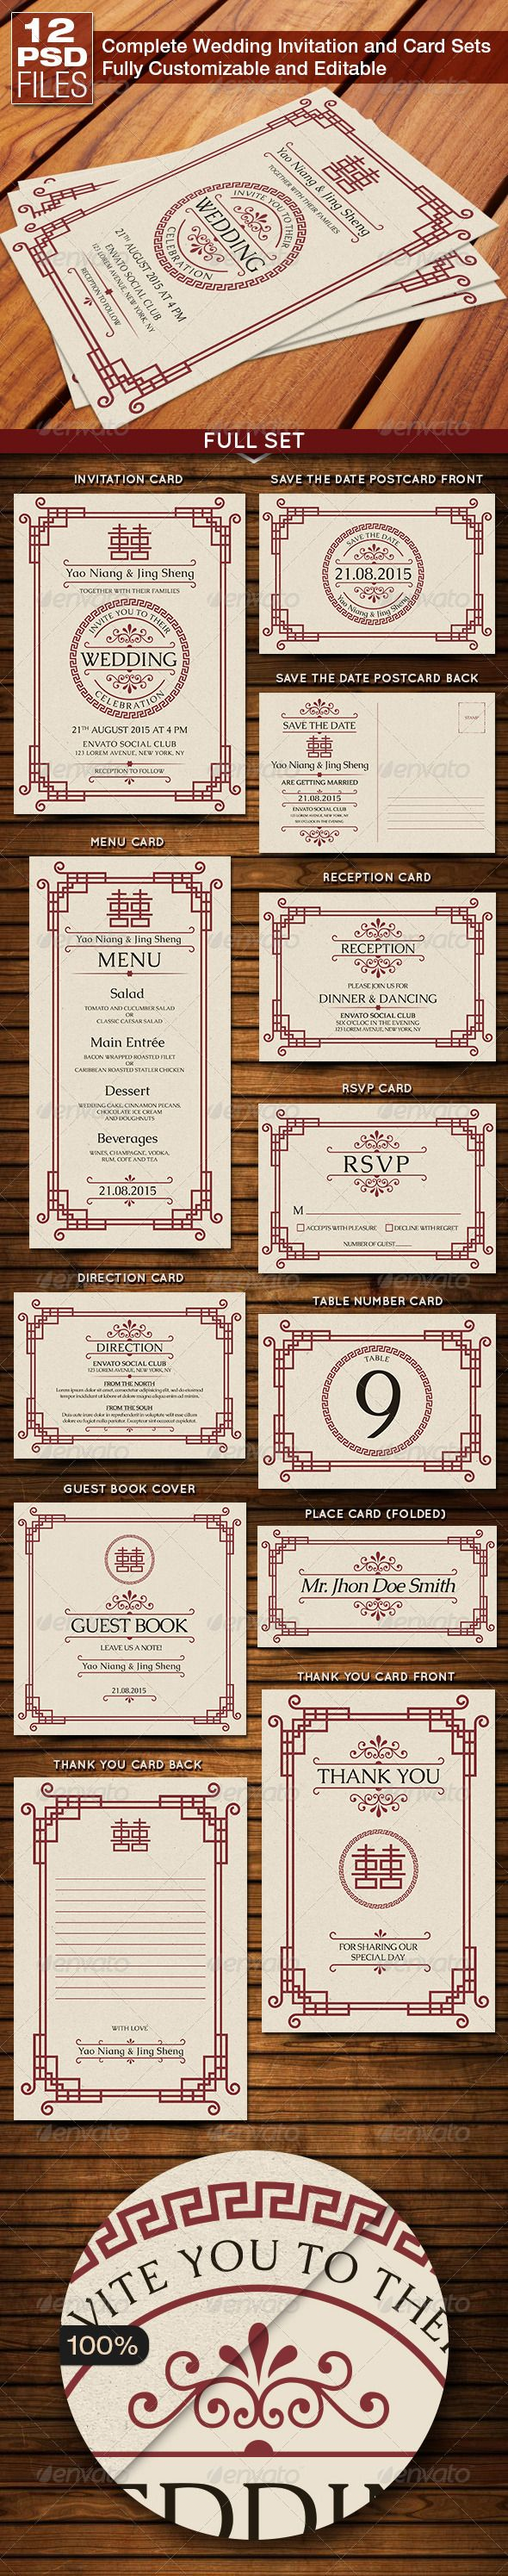 Oriental Style Wedding Invitation and Card Sets — Photoshop PSD #marriage #adorable • Available here → https://graphicriver.net/item/oriental-style-wedding-invitation-and-card-sets/8318033?ref=pxcr